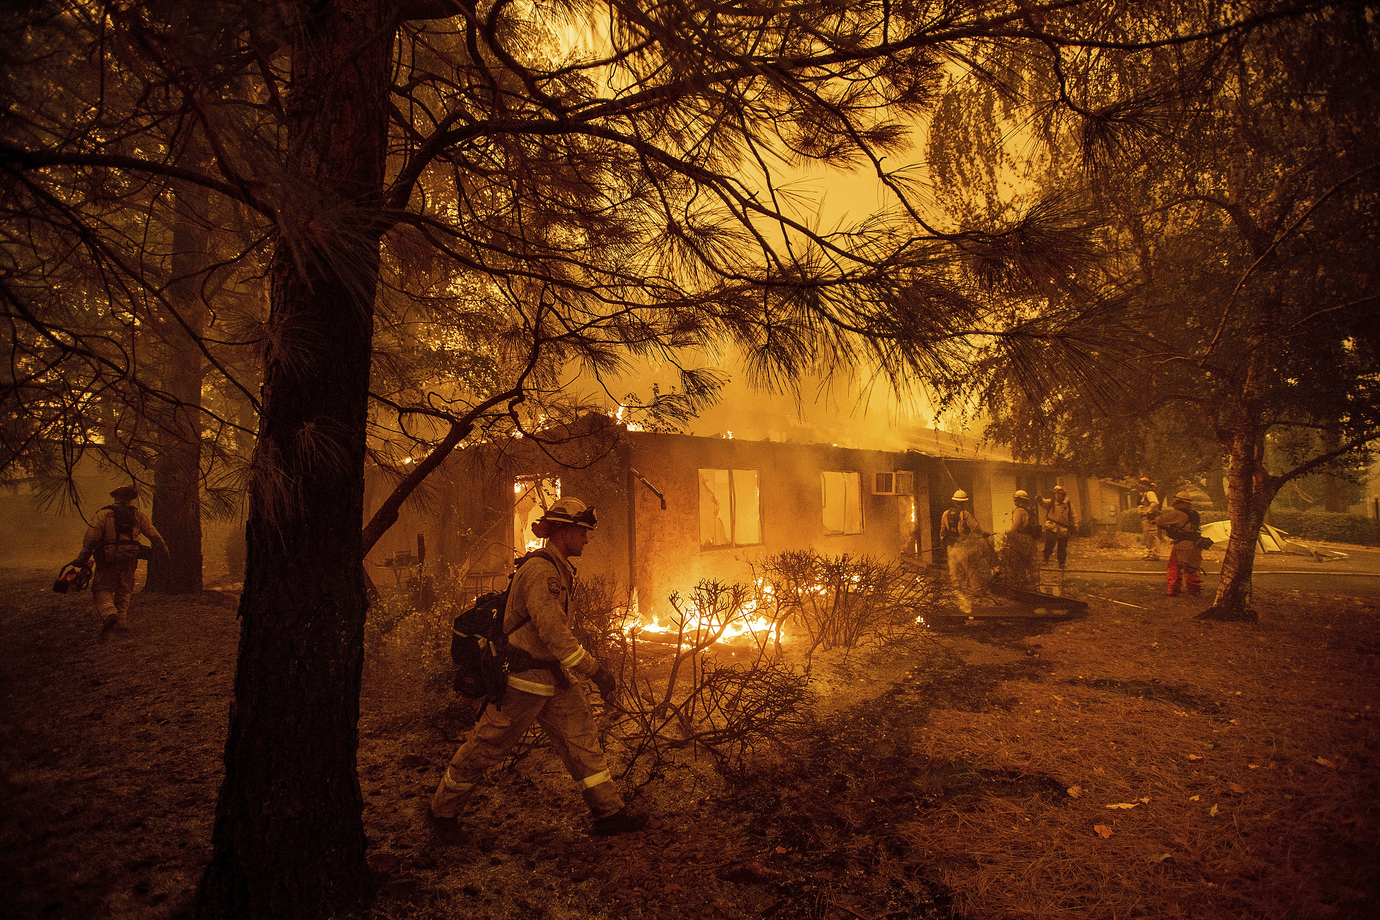 California_Wildfires_Insurance_82572-159532.jpg57486078